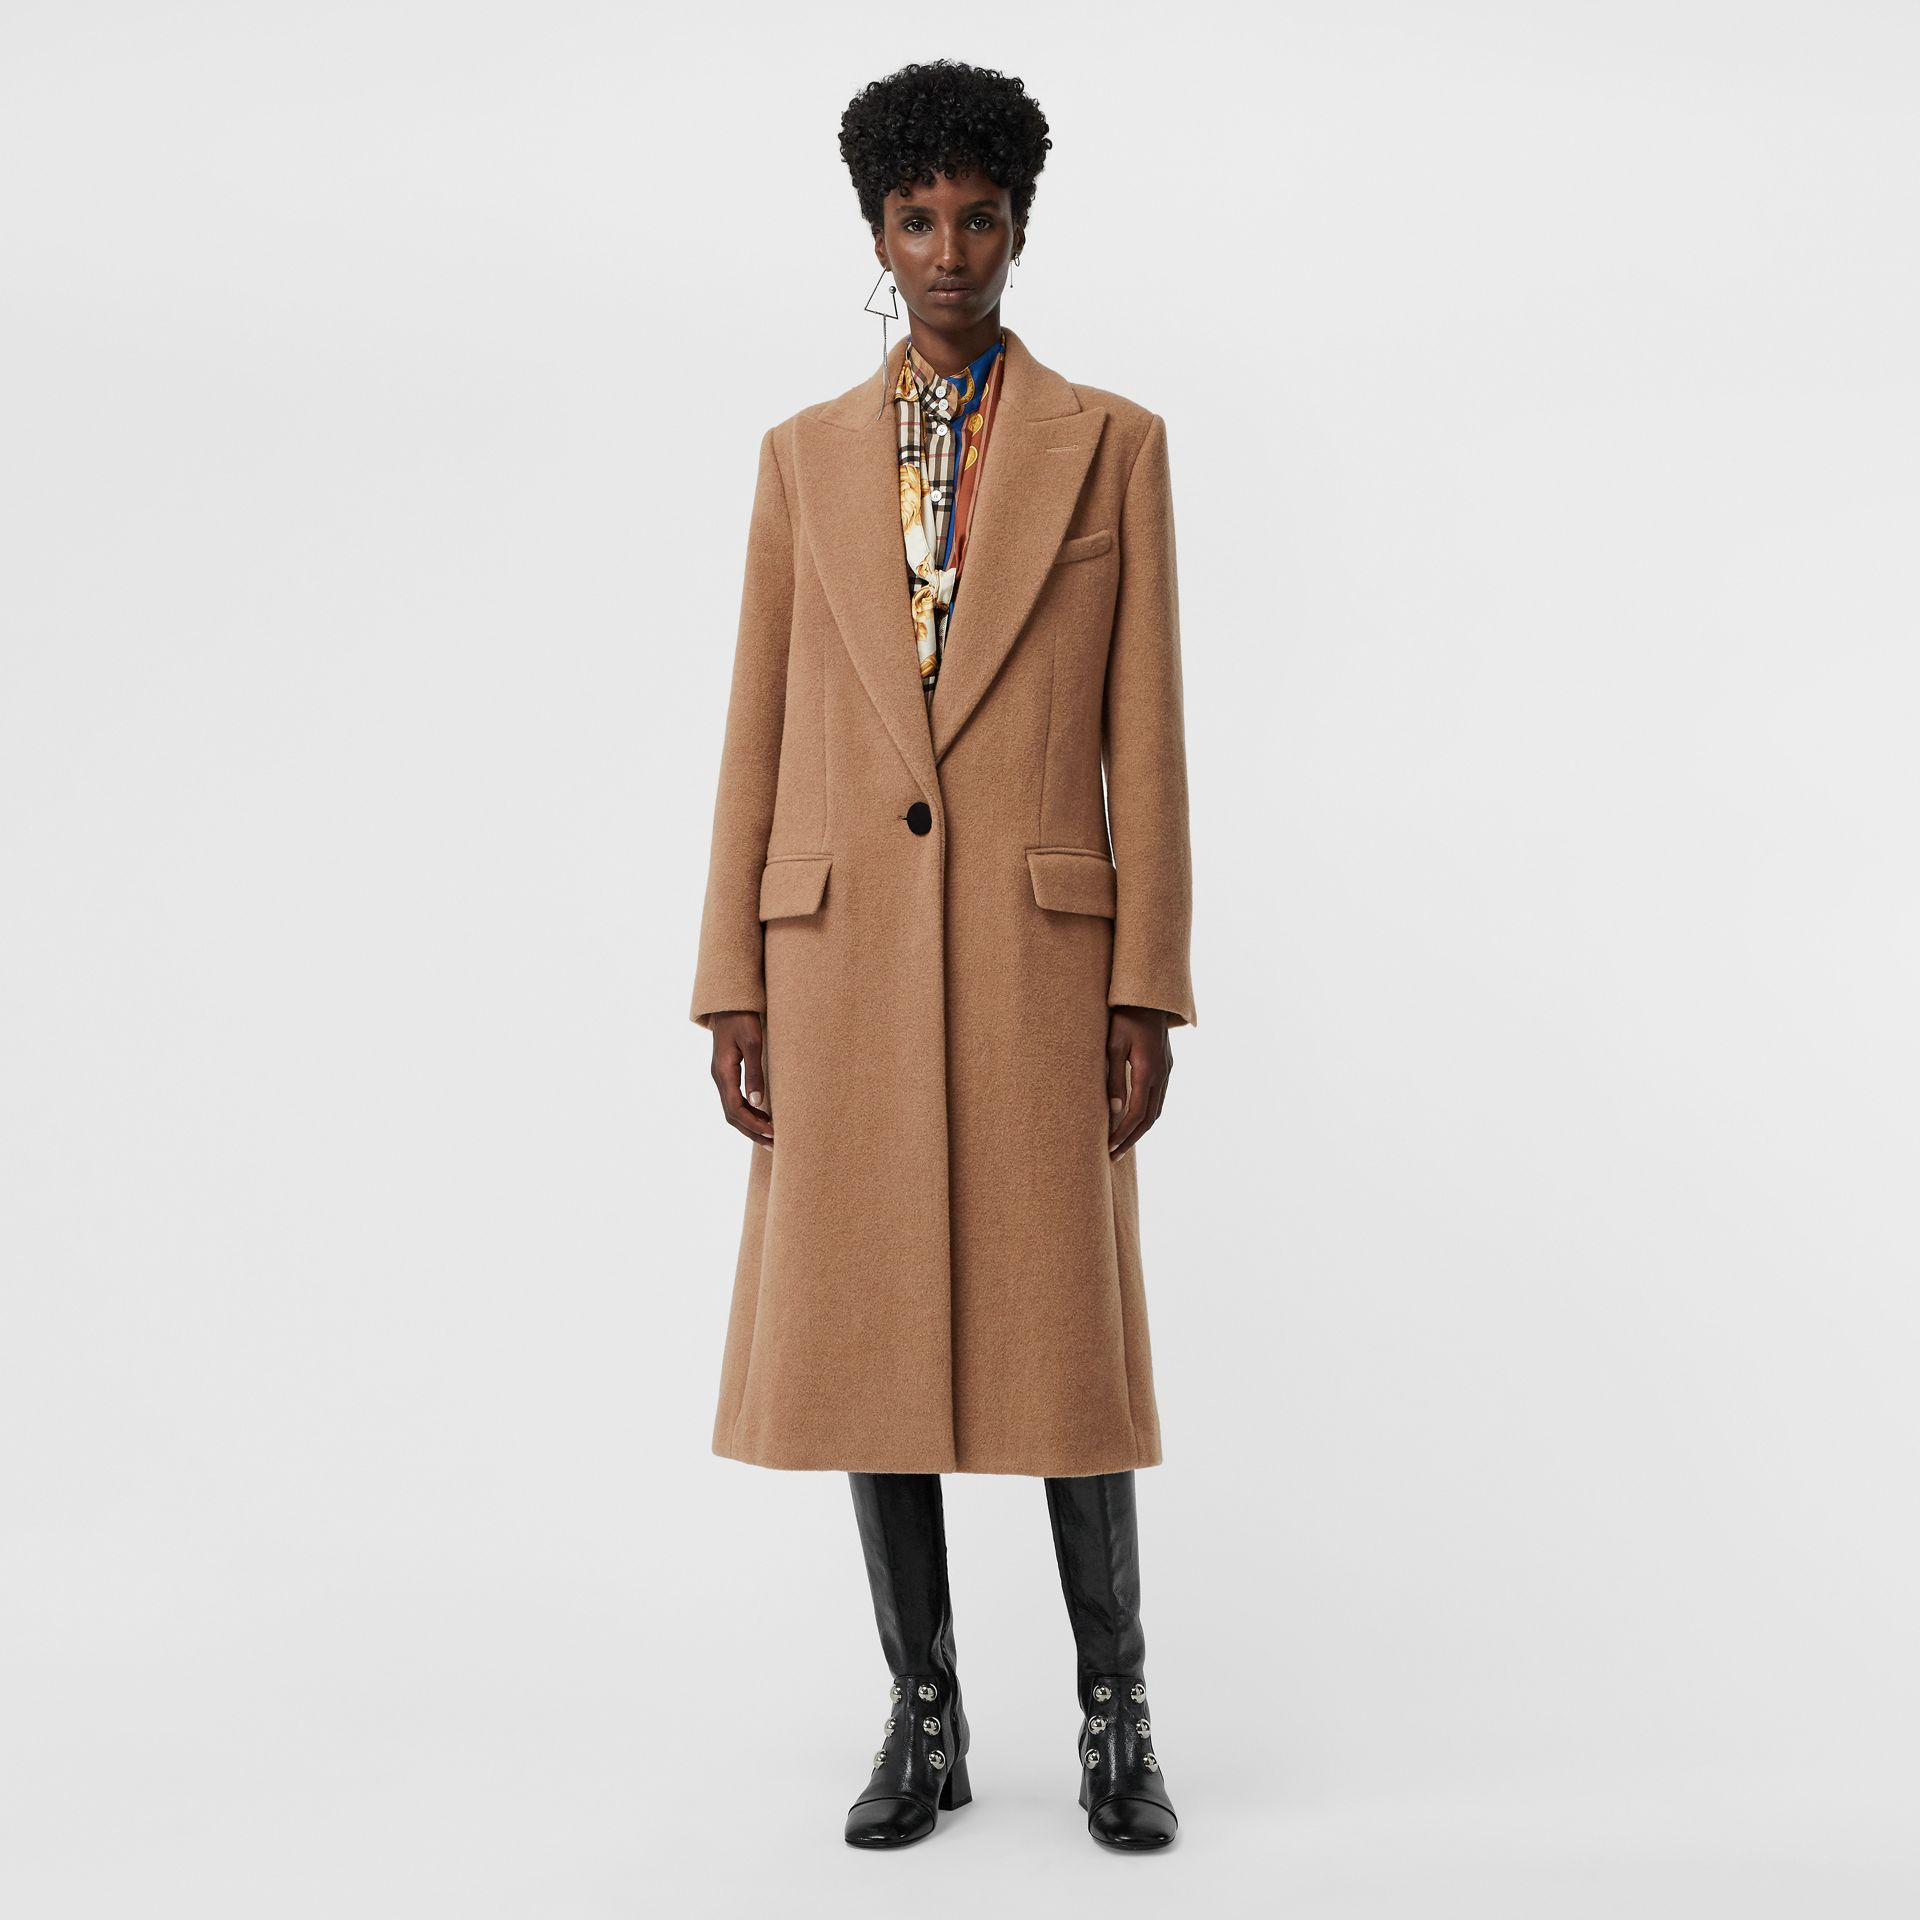 Oversized Lapel Camel Hair Tailored Coat - Women | Burberry - gallery image 5